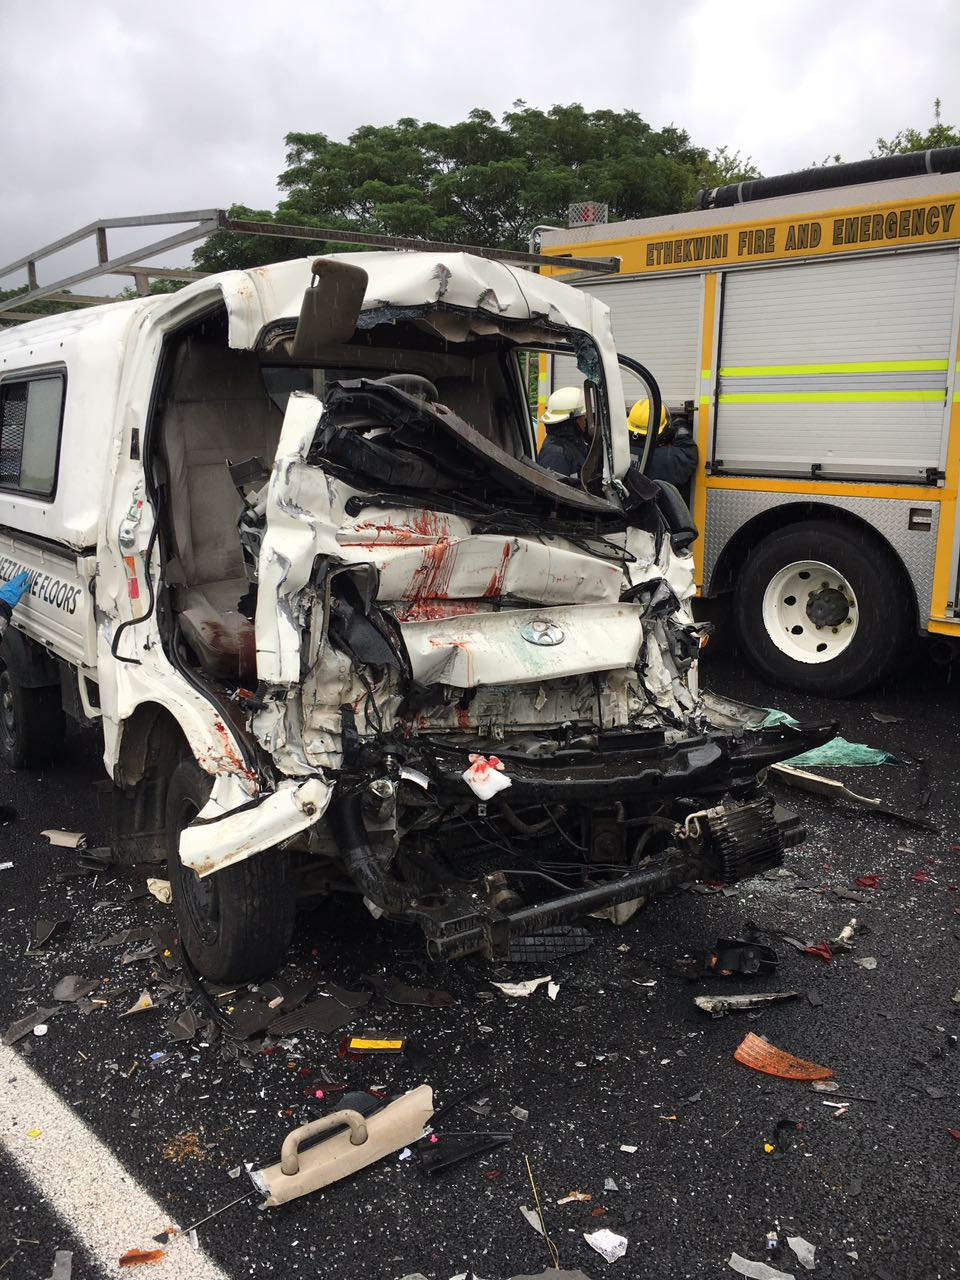 Serious collision on M19 just after the Dunkeld Road onramp